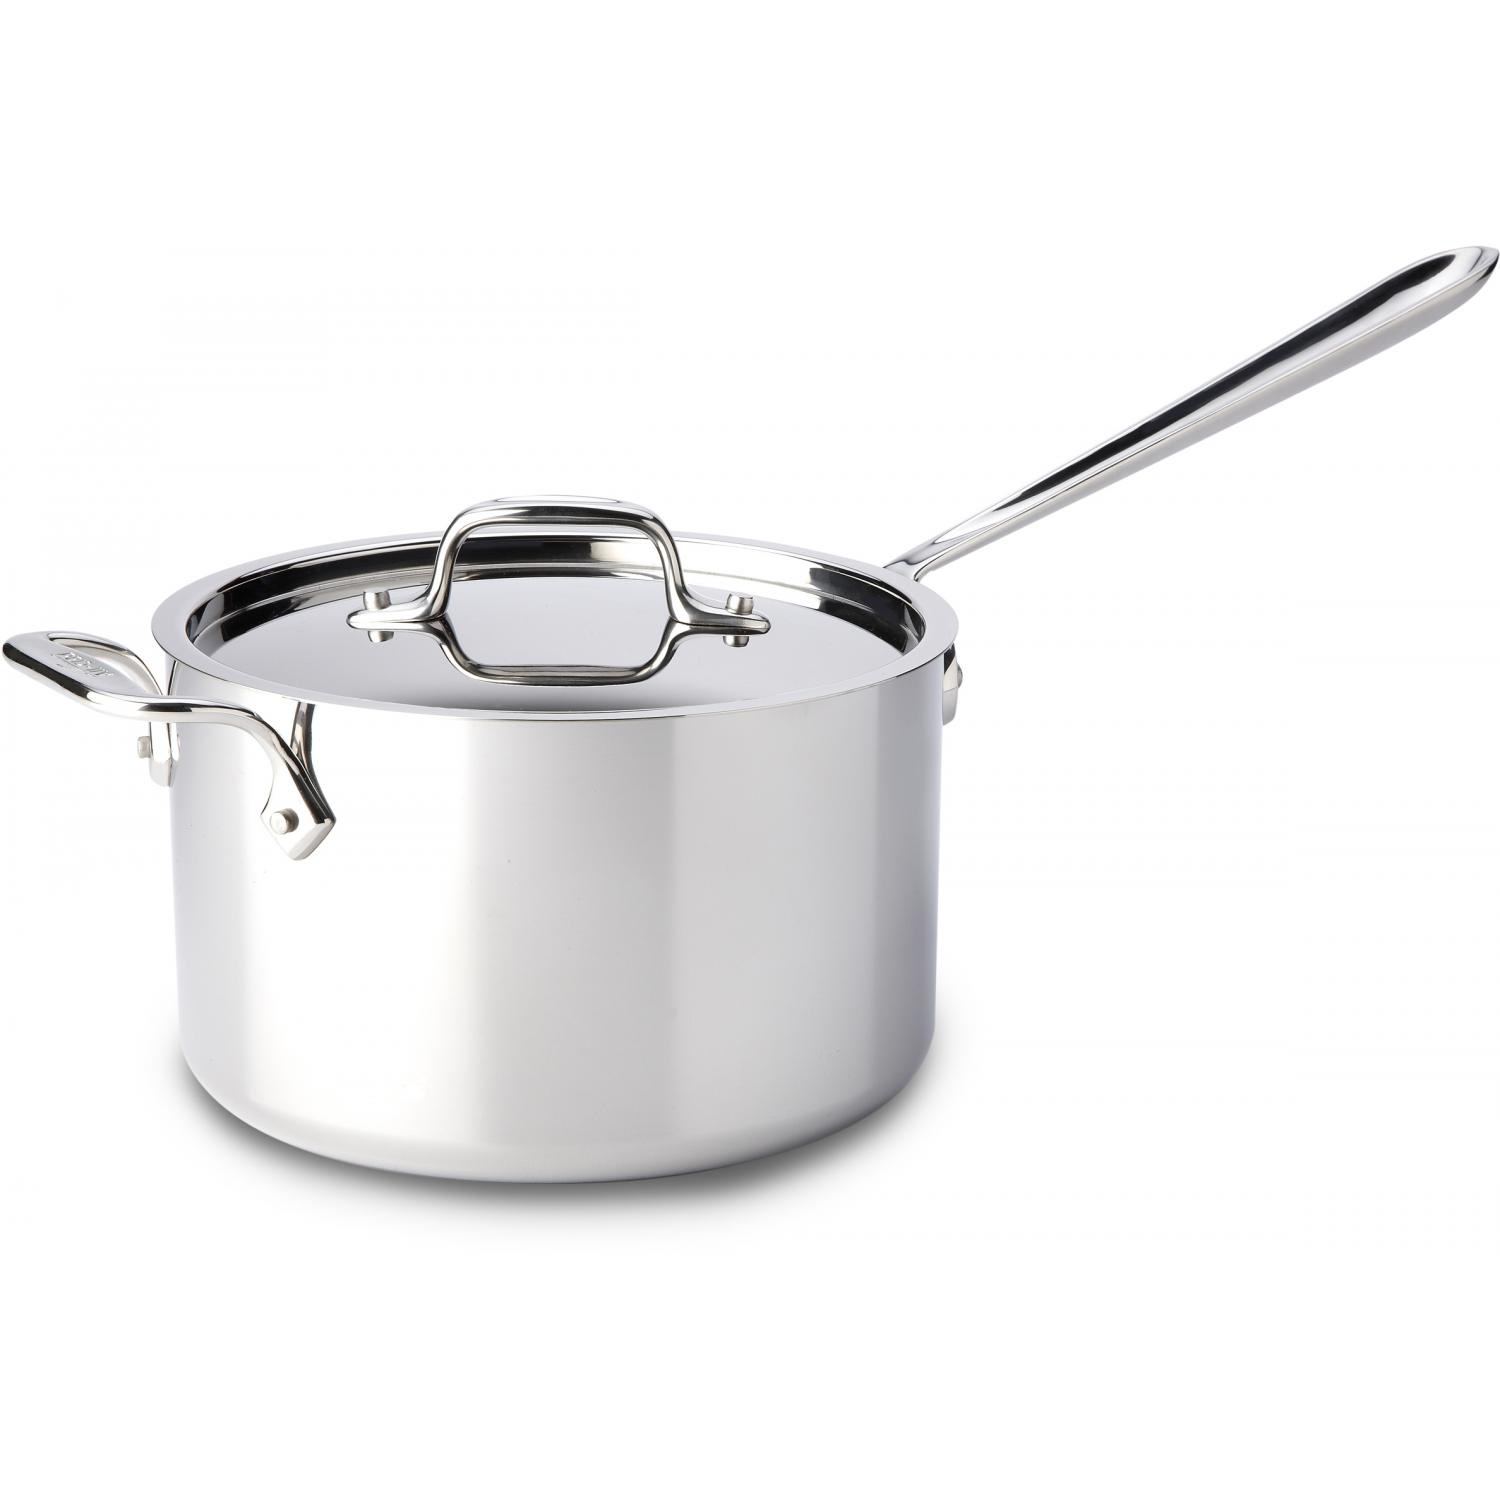 All-Clad Stainless 4-Quart Sauce Pan With Loop & Lid